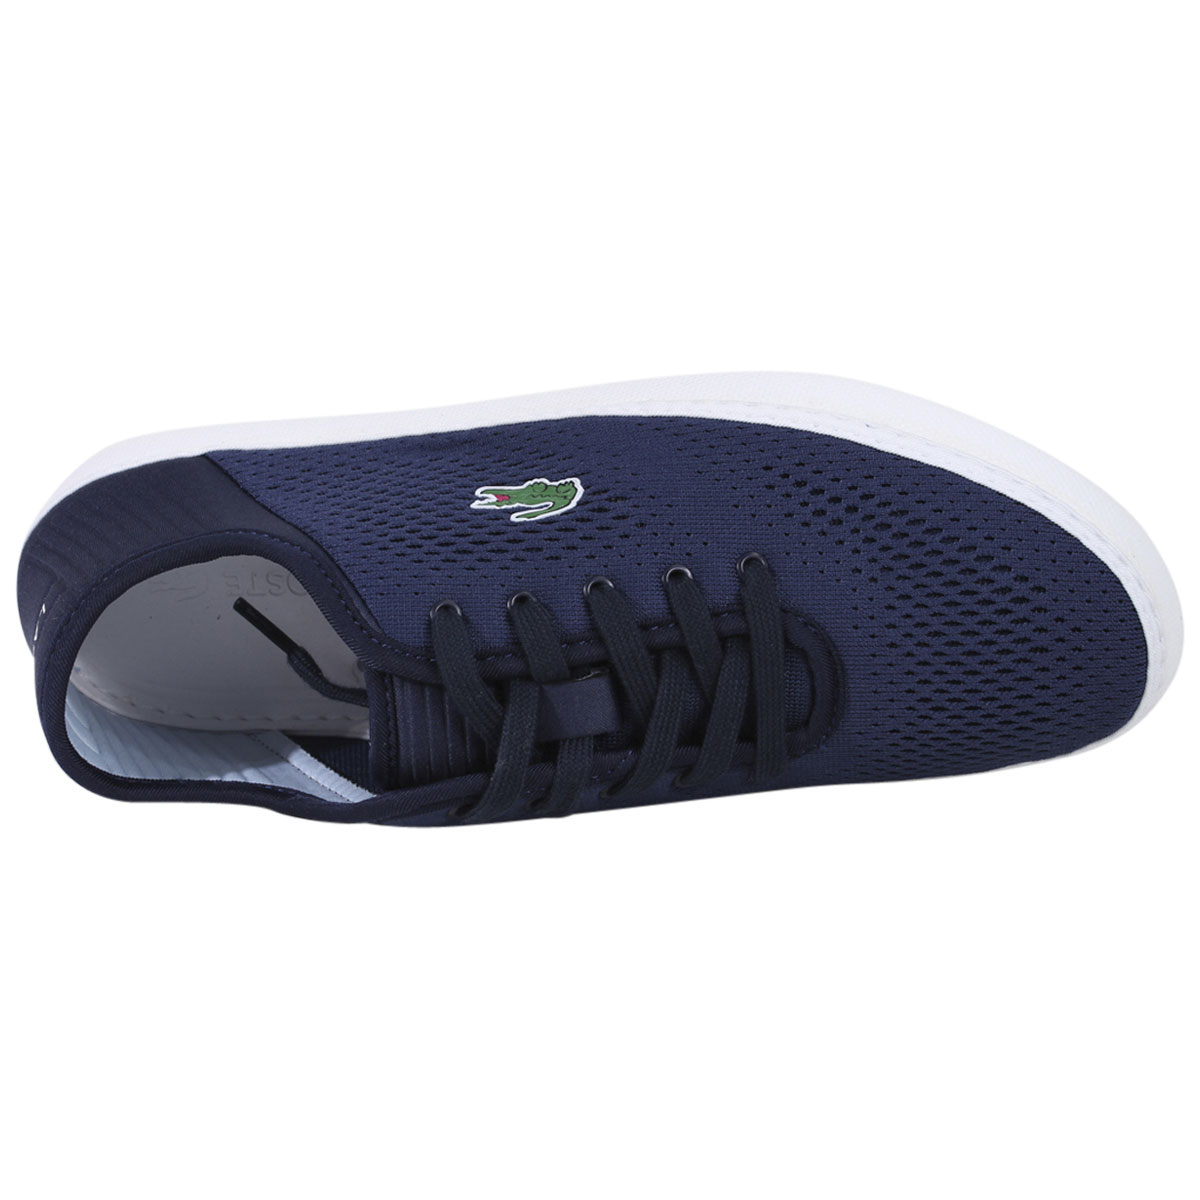 Lacoste-Men-039-s-L-Ydro-Lace-118-Trainers-Sneakers-Shoes thumbnail 13